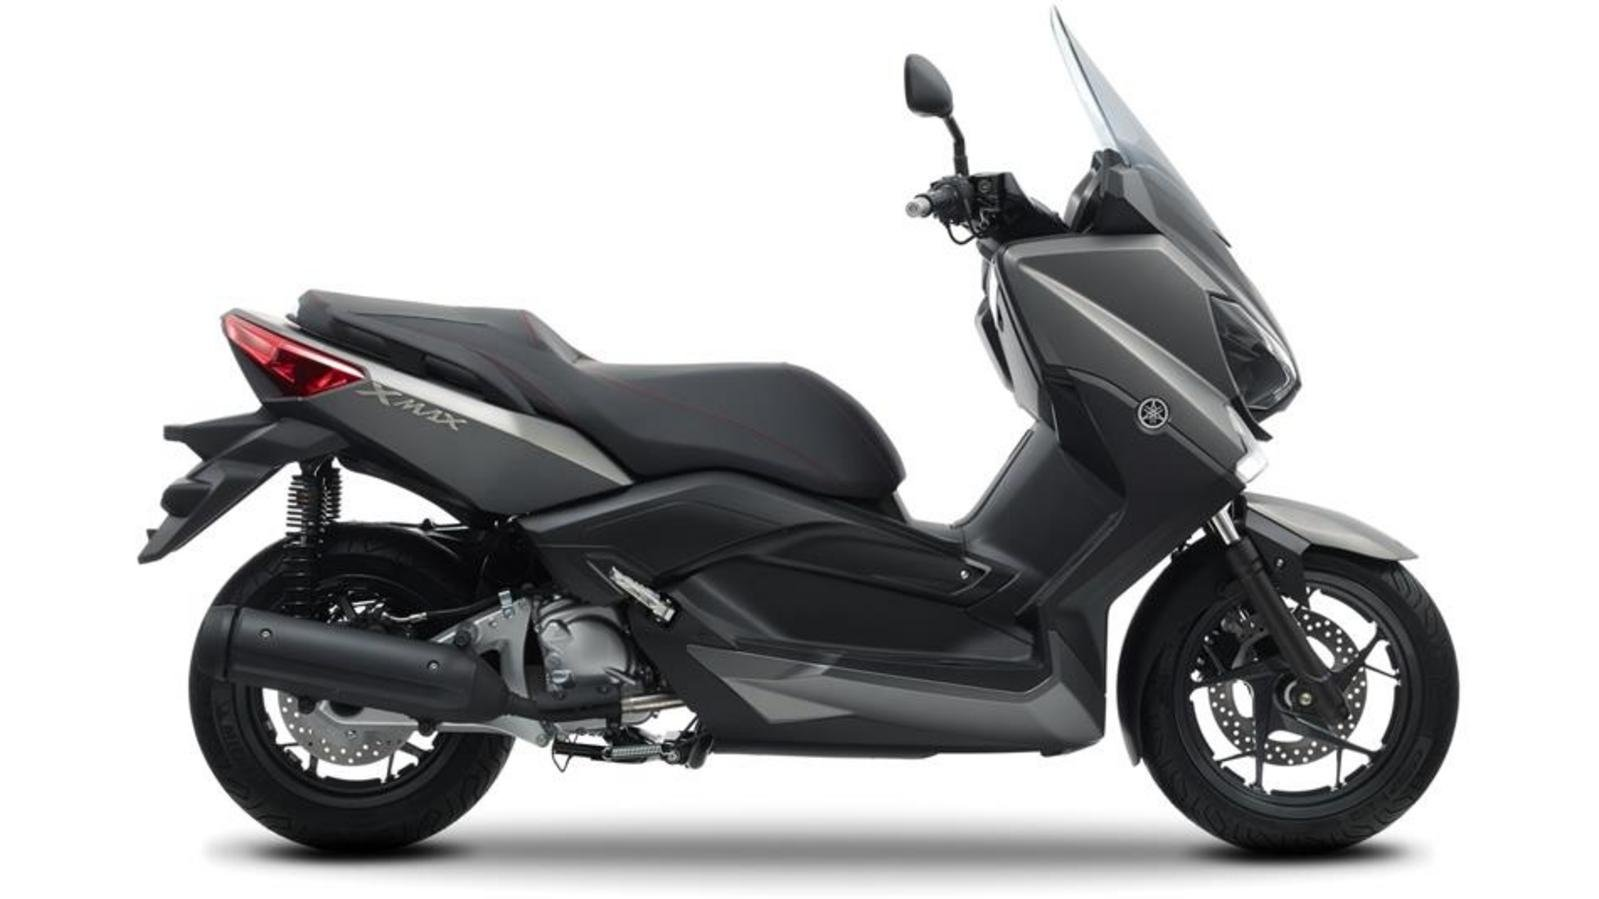 2014 yamaha x max 250 review top speed. Black Bedroom Furniture Sets. Home Design Ideas